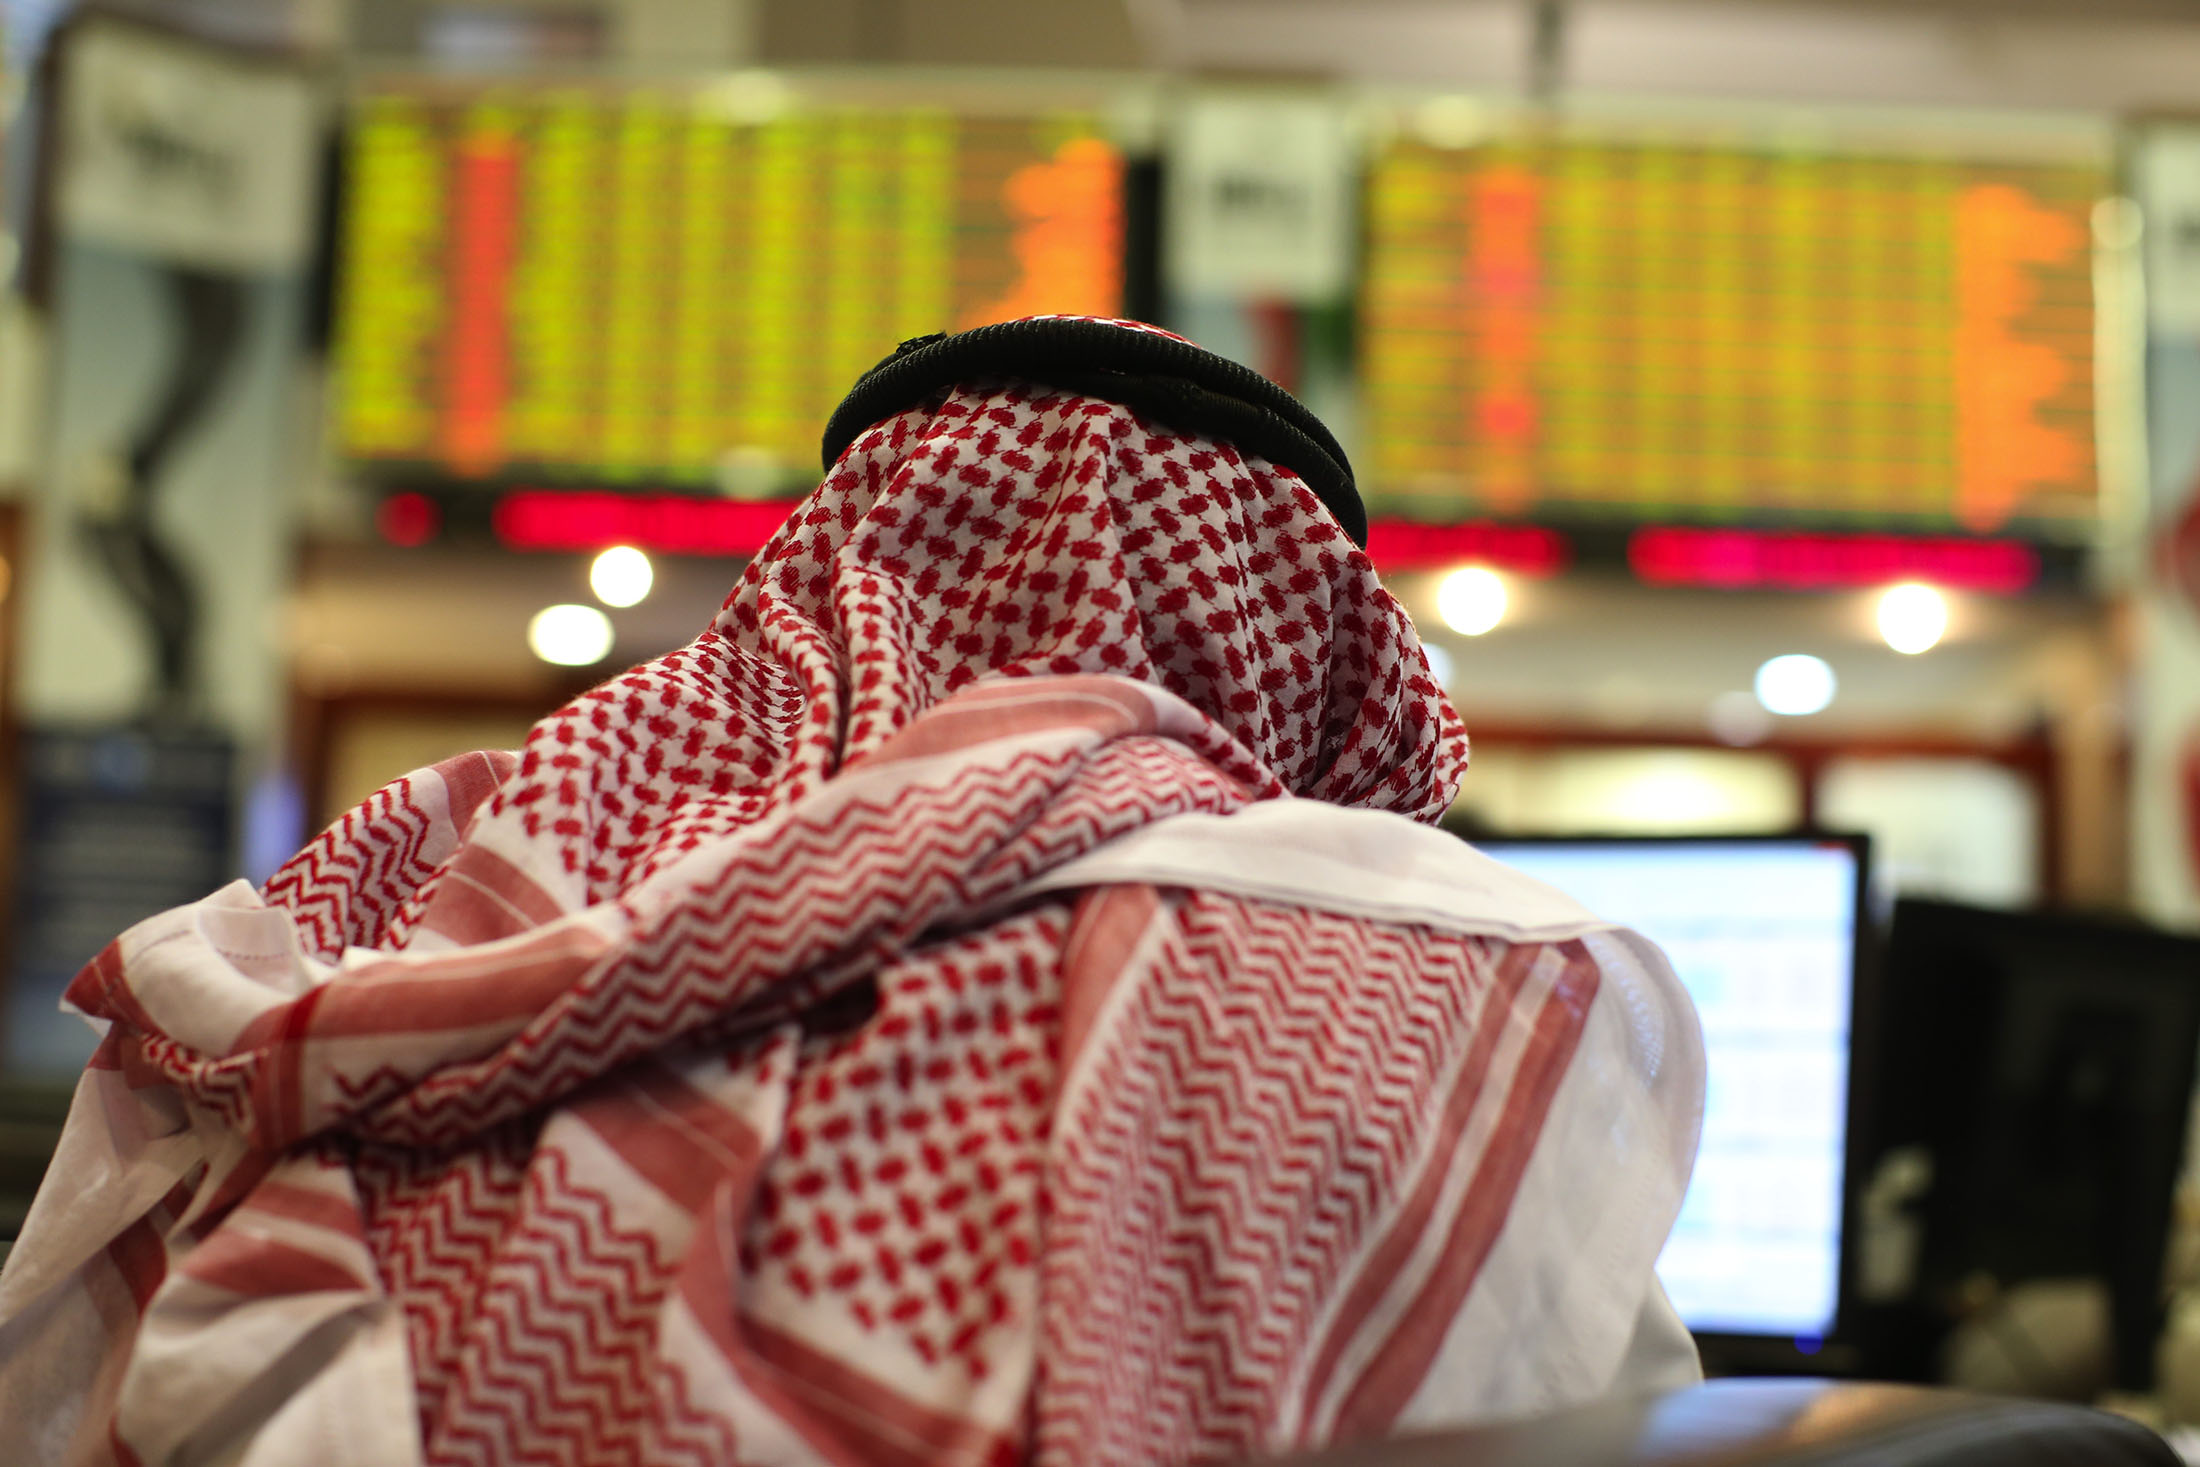 Saudi Stocks Defy Moody's Cut as Maaden Rallies; Dubai Retreats - Bloomberg